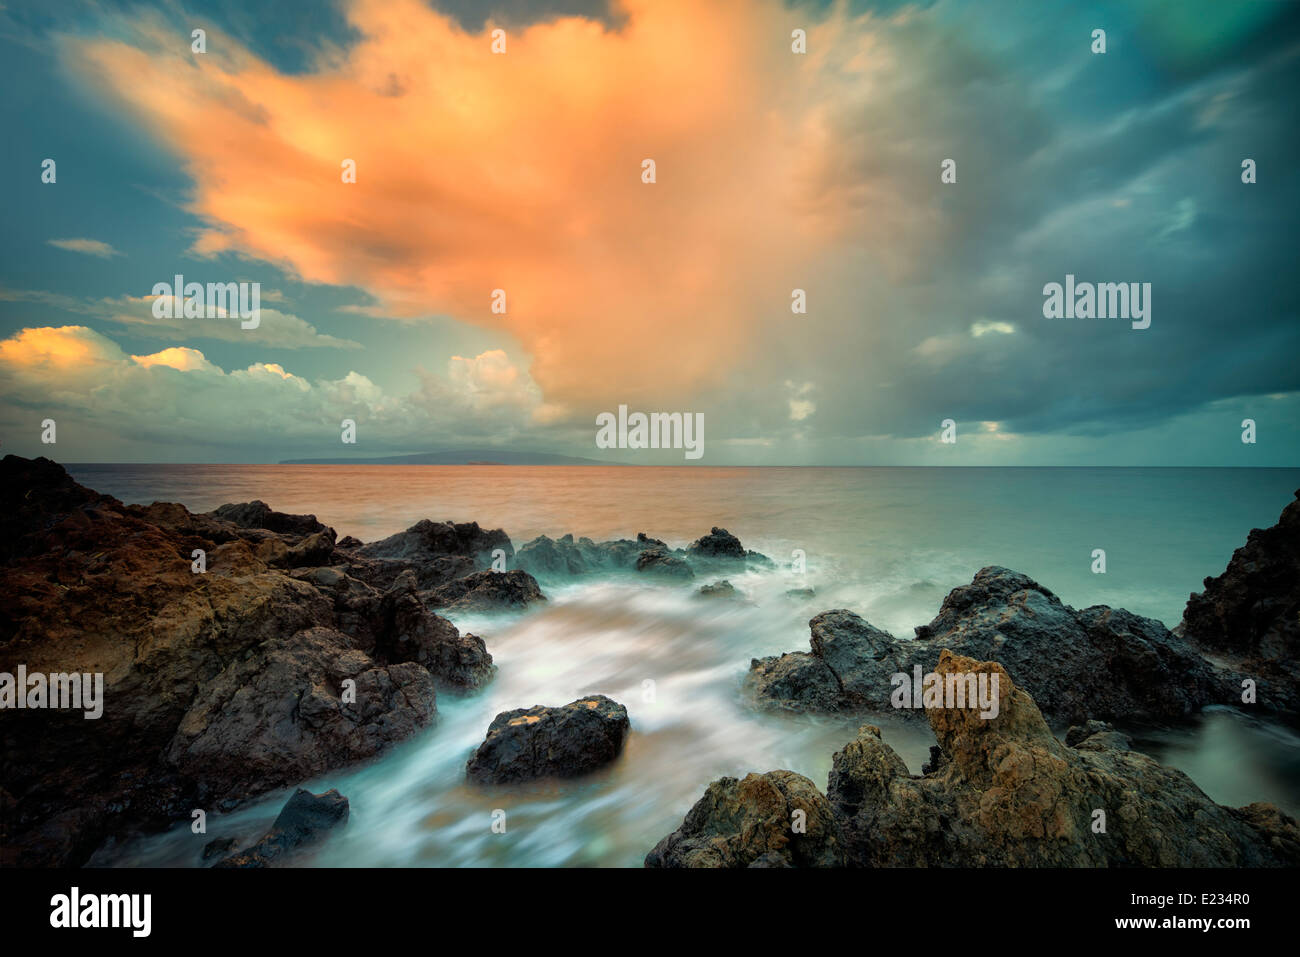 Sunrise and clouds on rocky beach. Maui, Hawaii - Stock Image